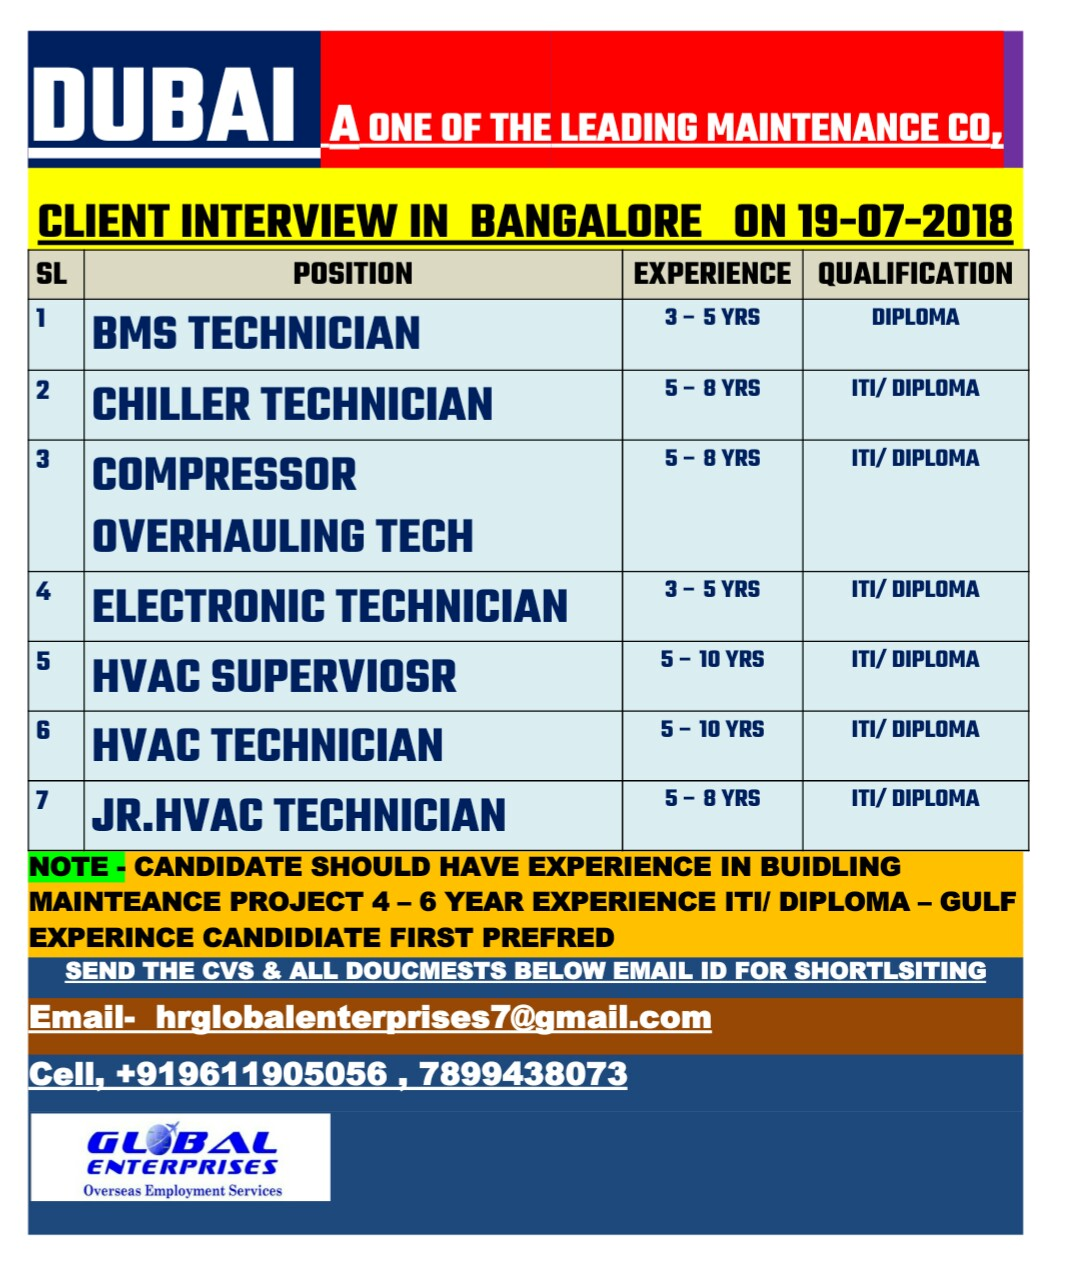 DUBAI - A ONE OF THE LEADING MAINTENANCE CO, - CLIENT